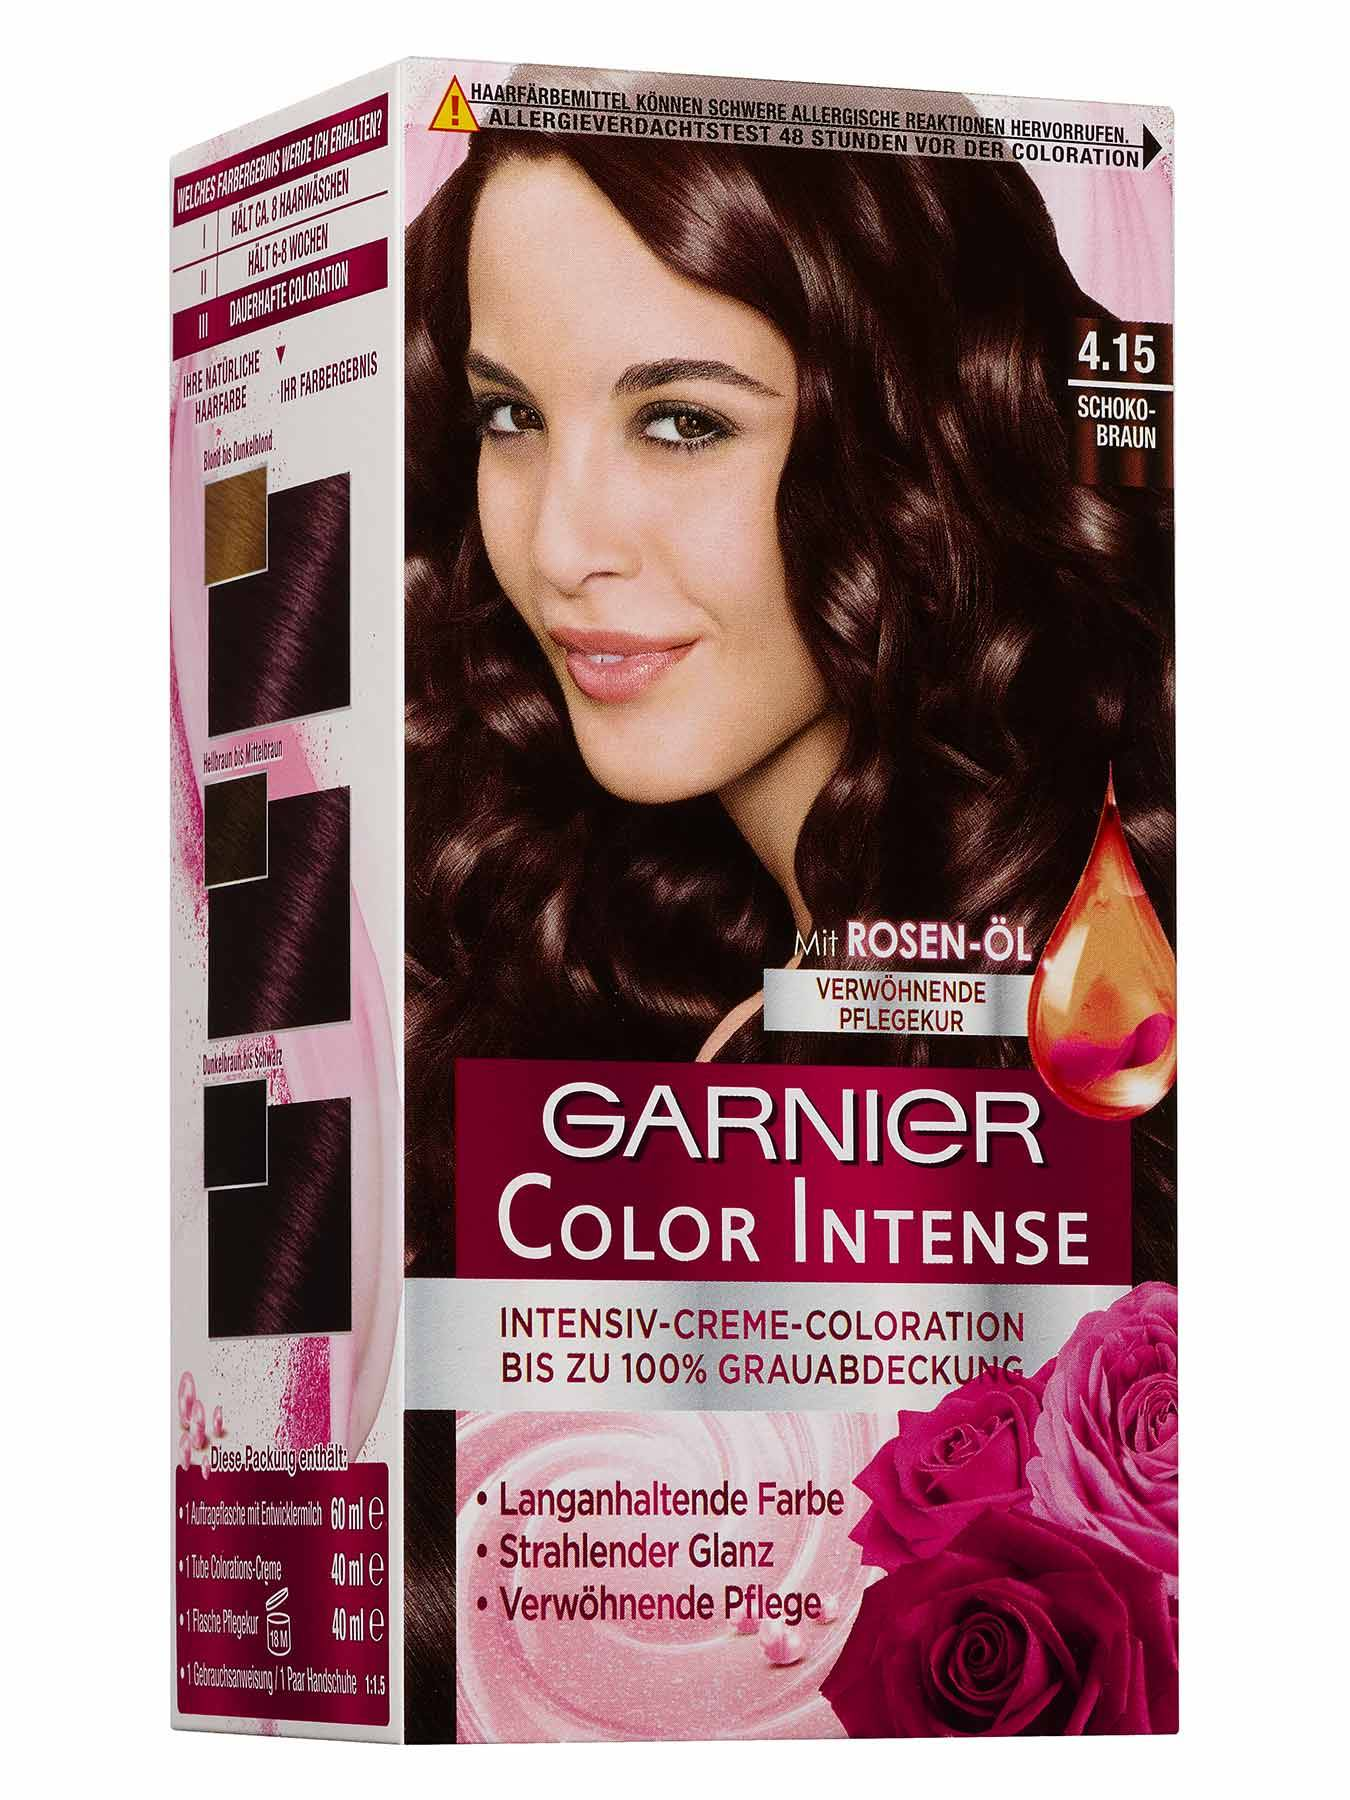 4-15-Schokobraun-Intensiv-Creme-Coloration-Color-Intense-1Stk-Vorderseite-Garnier-Deutschland-gr